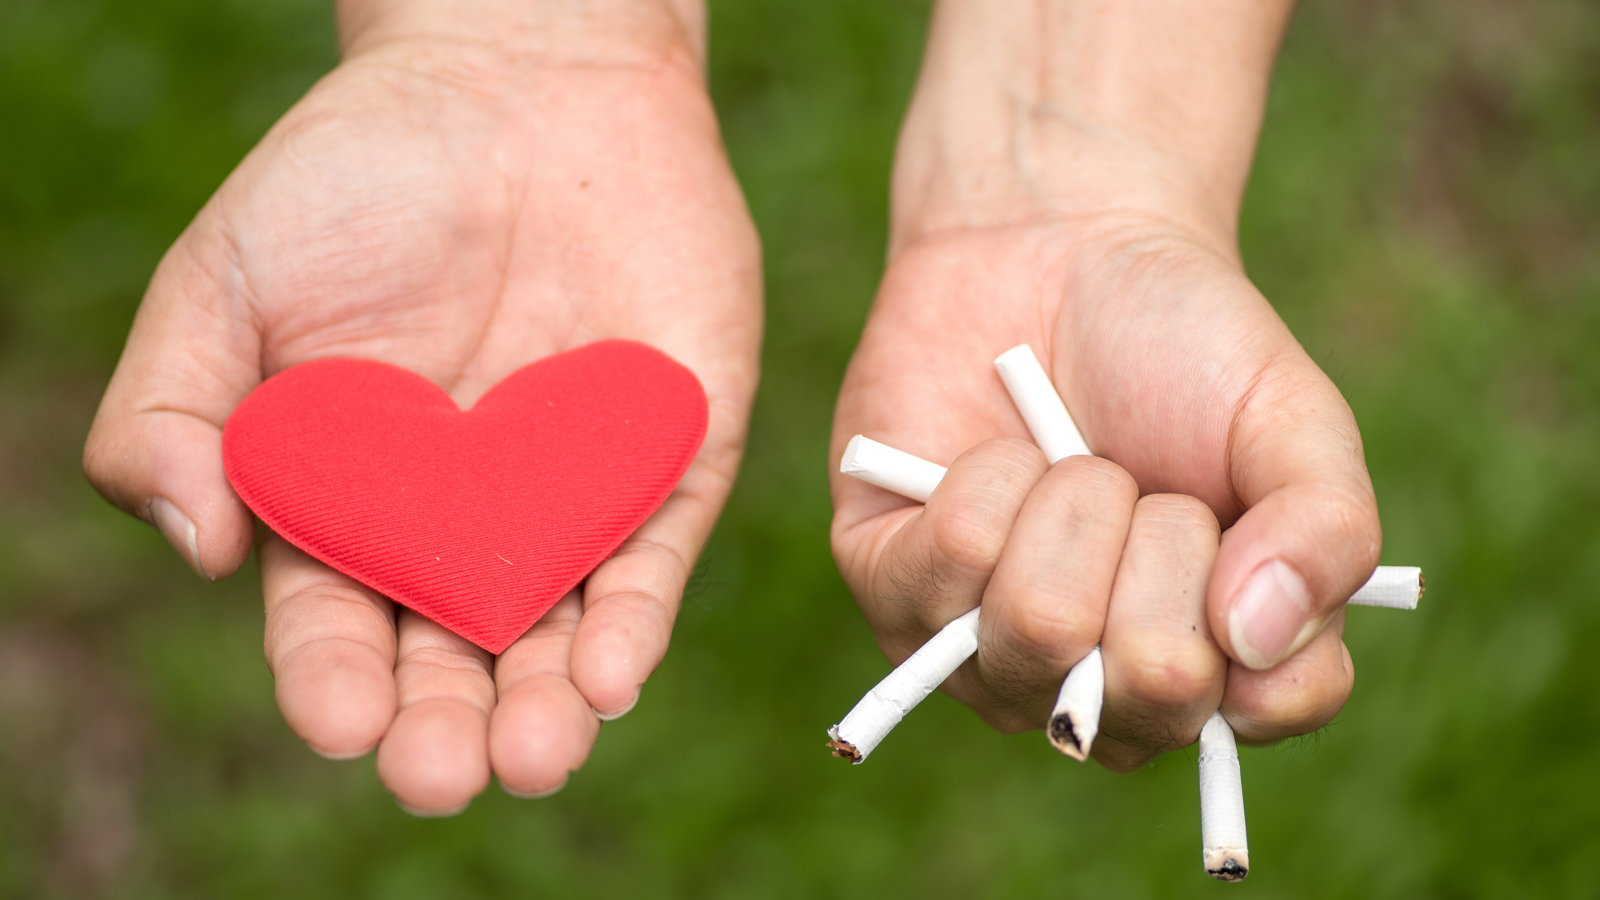 woman holding paper heart in one hand and crushed cigarettes in the other